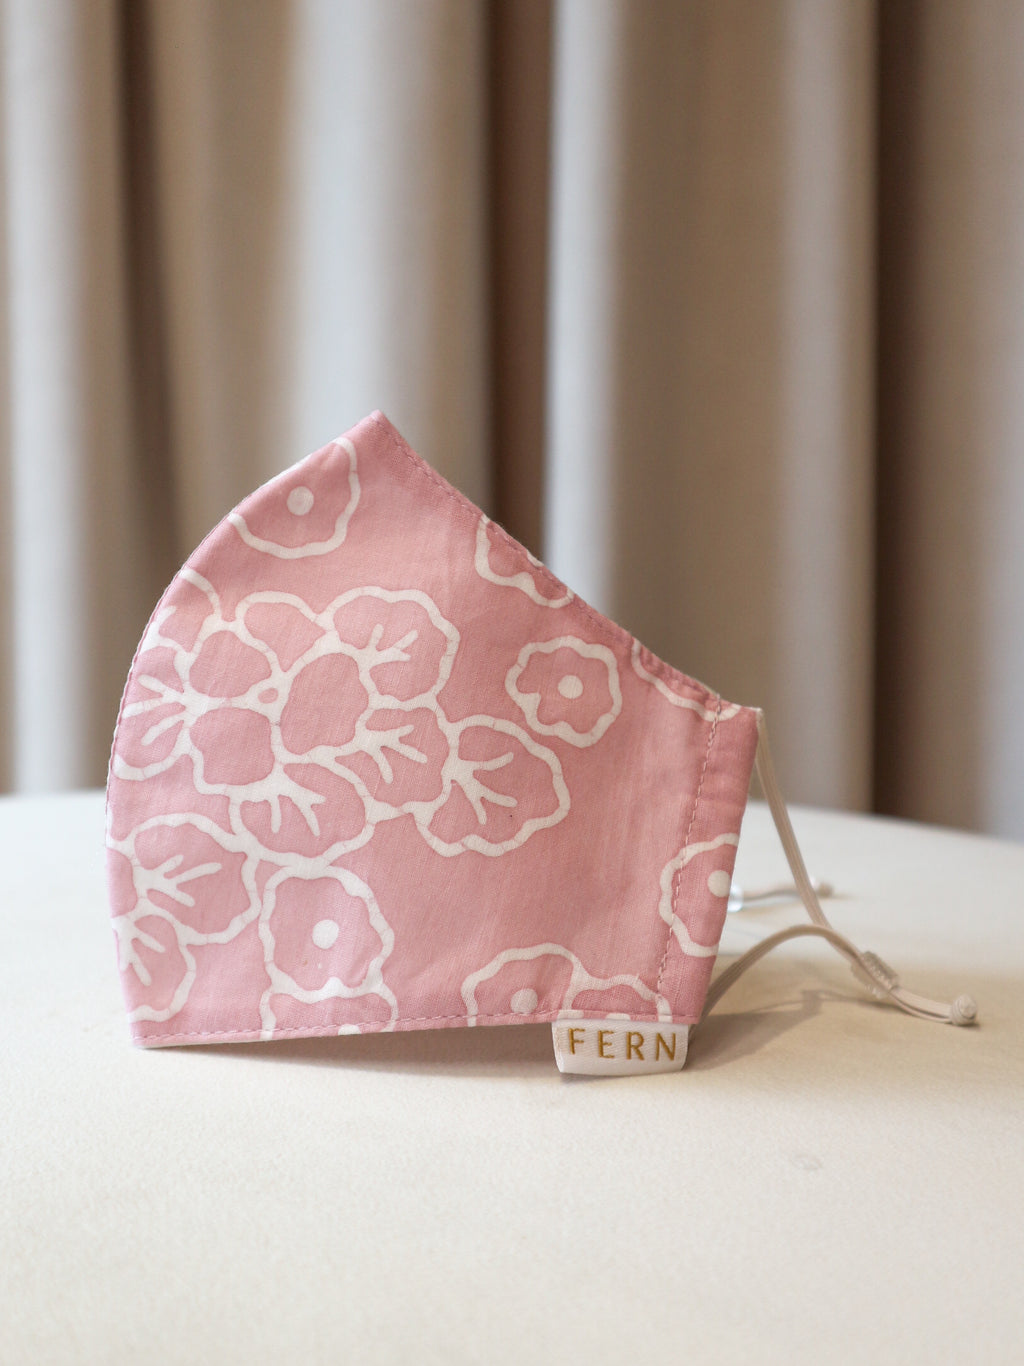 Face Mask - Sakura Block Pink - FERN